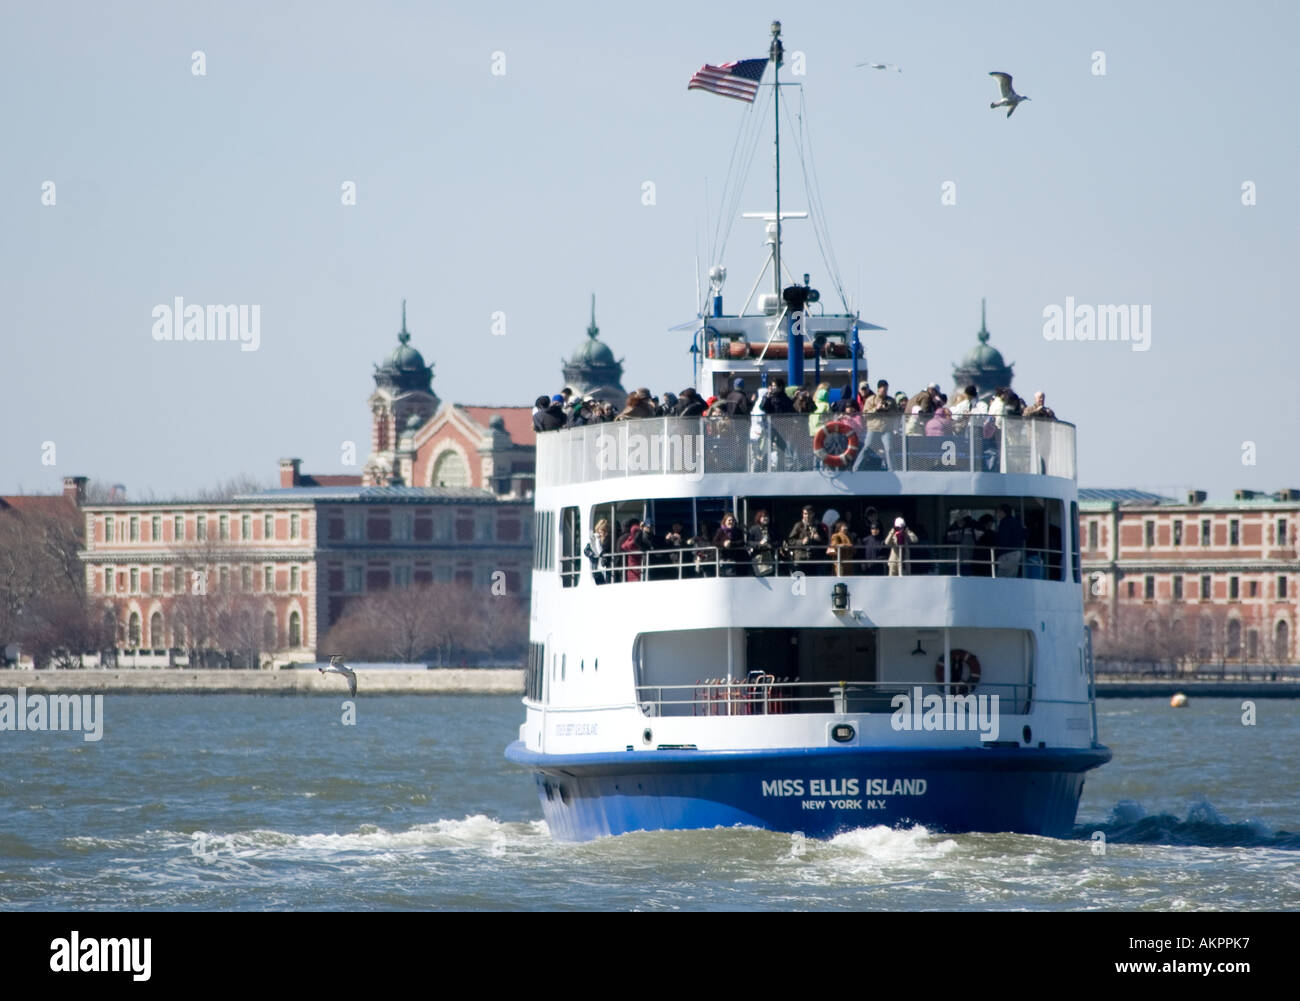 Ellis Island ferry - Stock Image